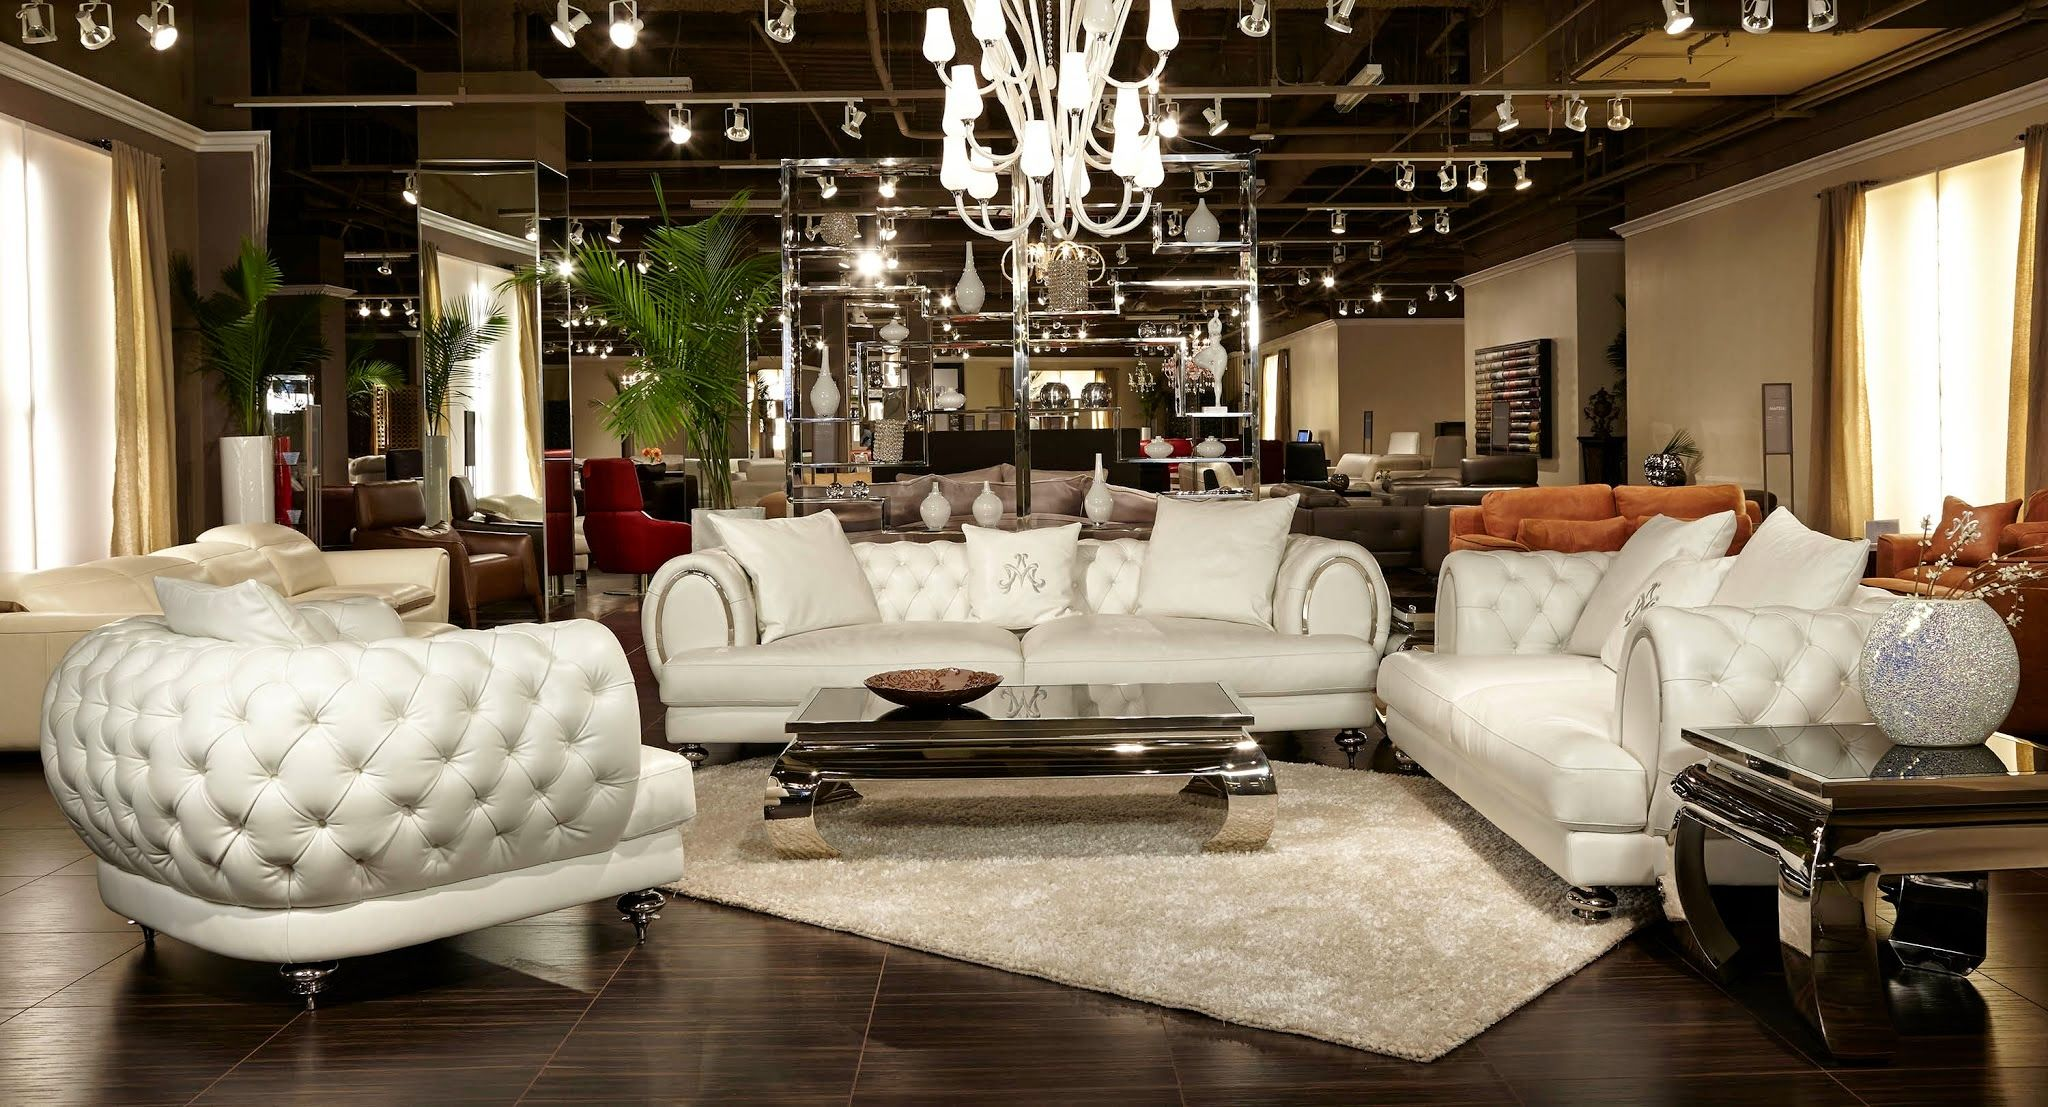 Fabulous-formal-living-room-furniture-design-in-luxury